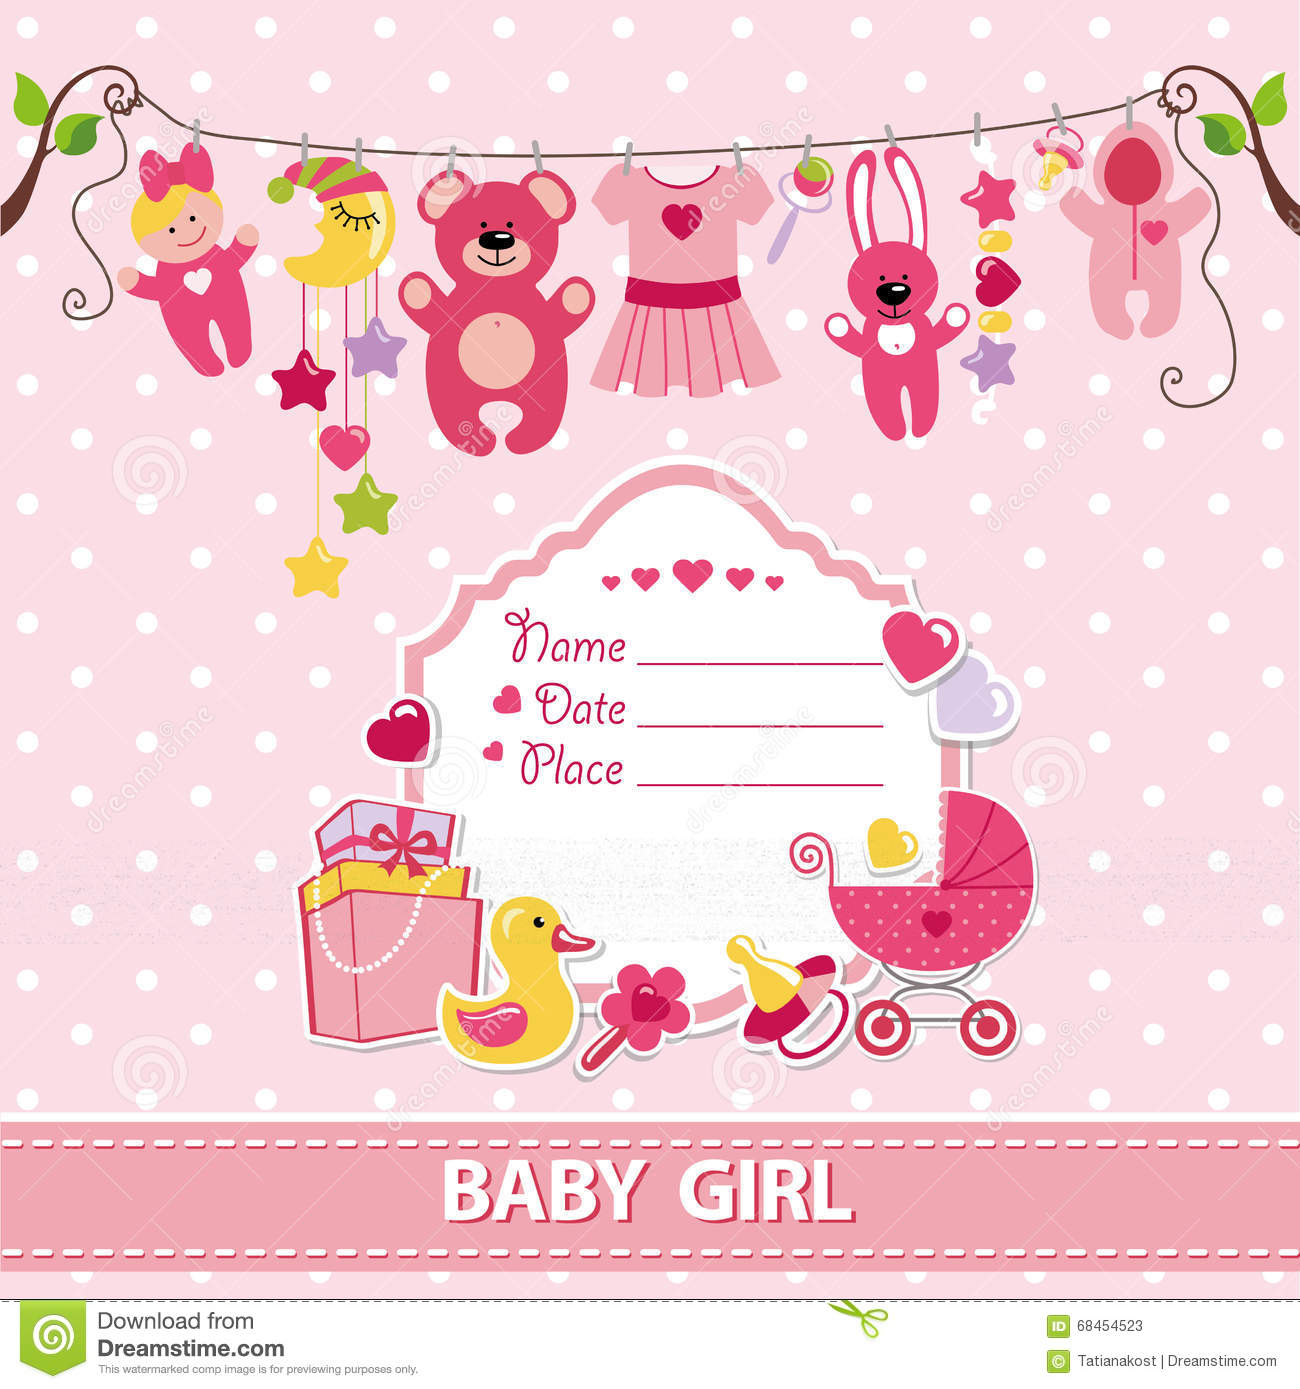 New born baby girl card shower invitation template stock vector new born baby girl card shower invitation template filmwisefo